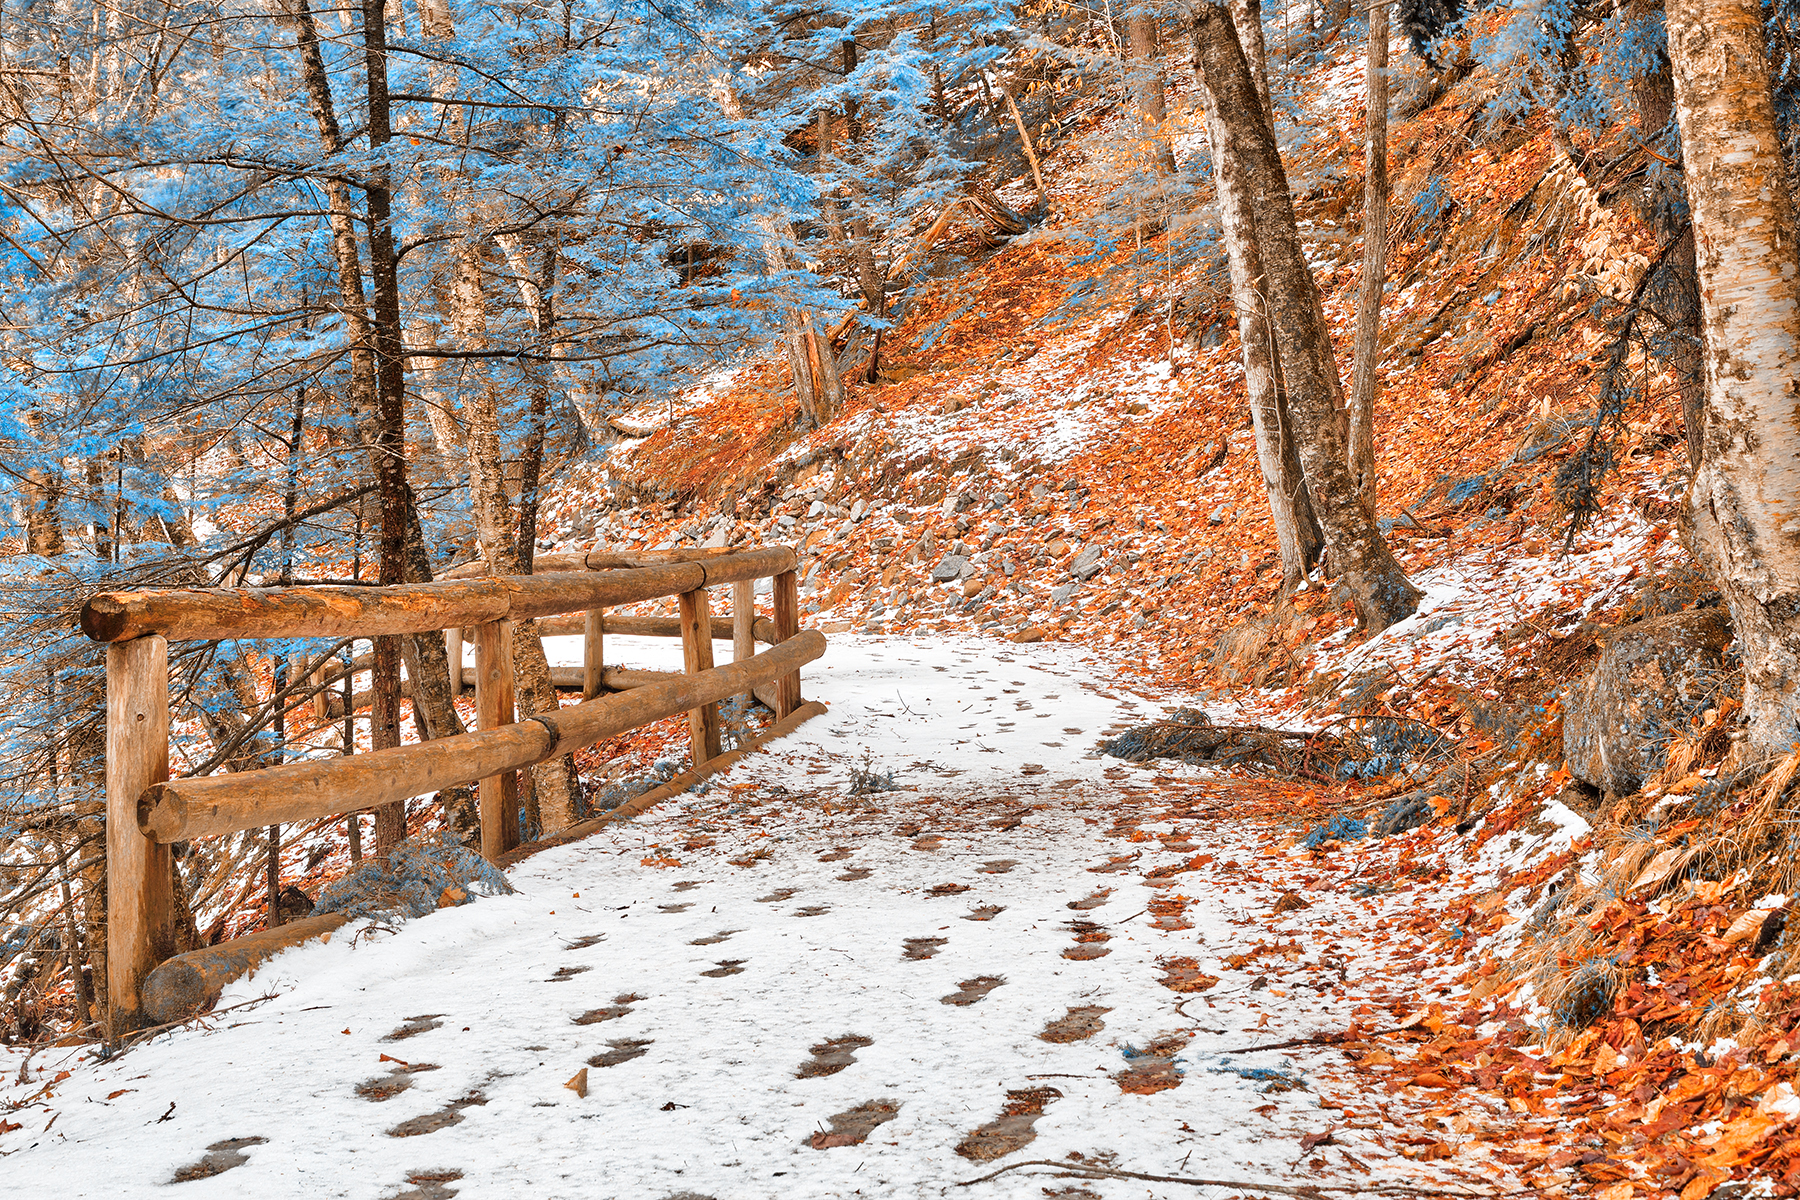 Sabbaday winter forest trail - amber sapphire fantasy hdr photo